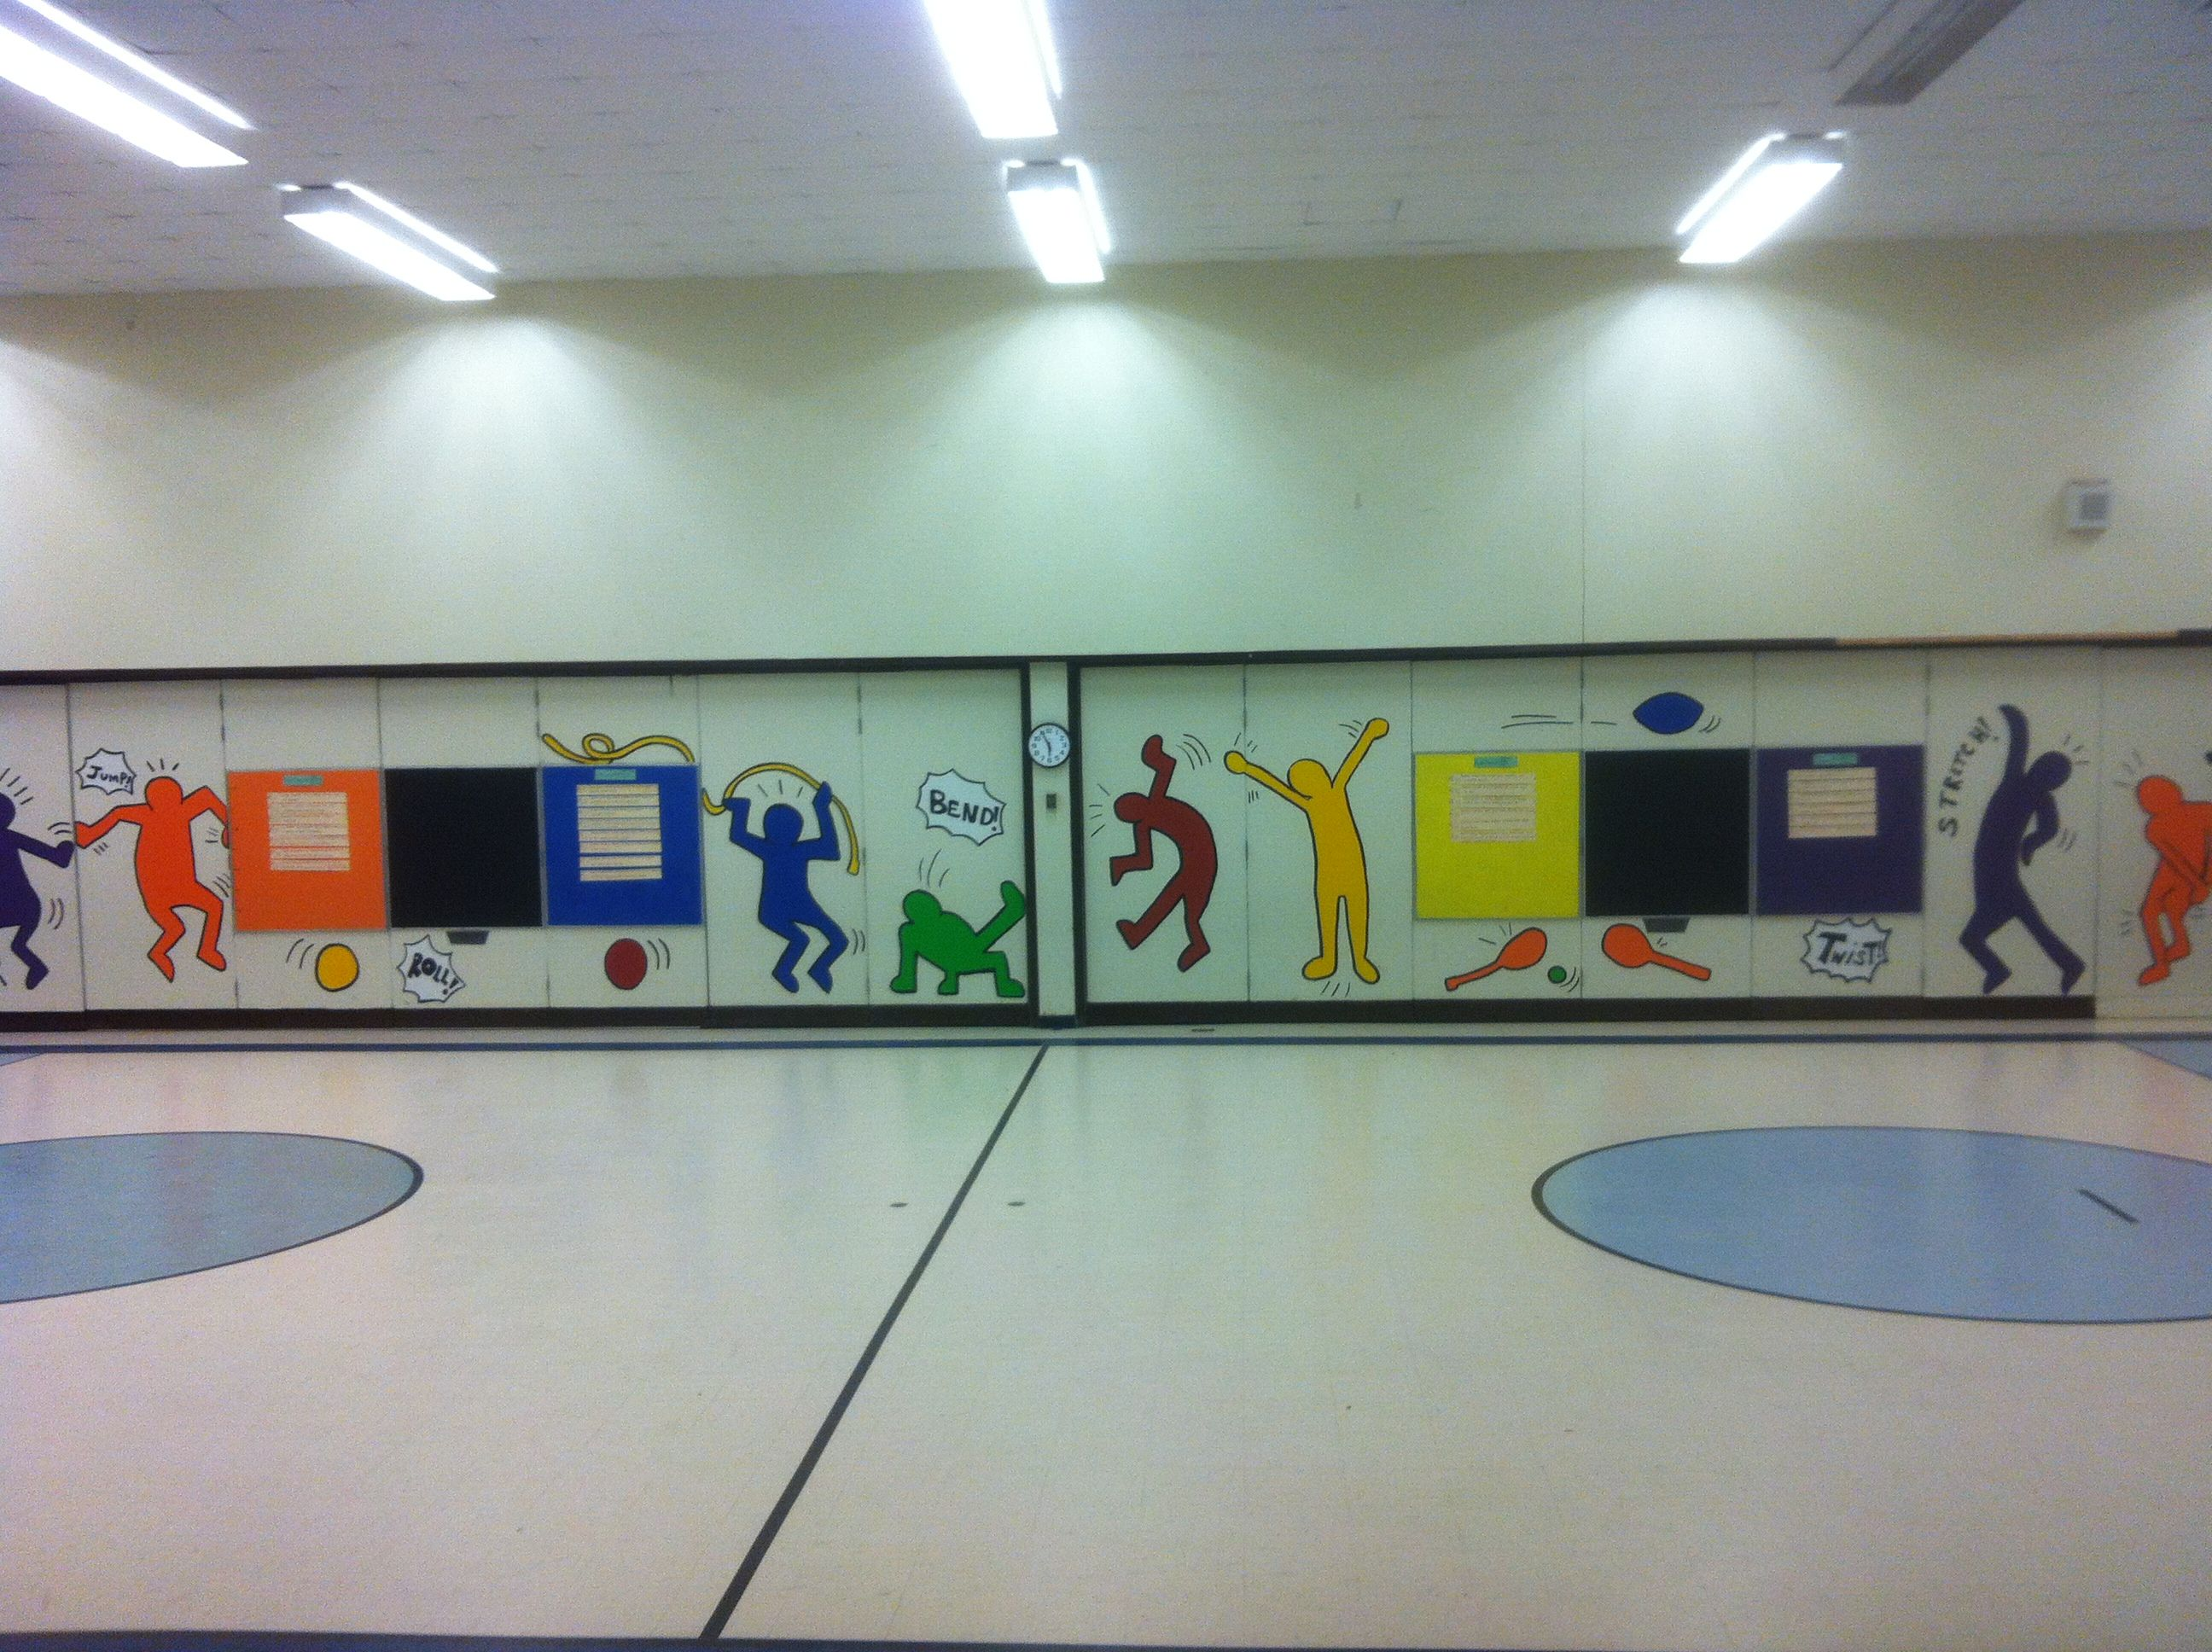 Easy wall mural in gym using pe standard words brightens up and easy wall mural in gym using p brightens up and it took eight people one day when i get a gym amipublicfo Image collections